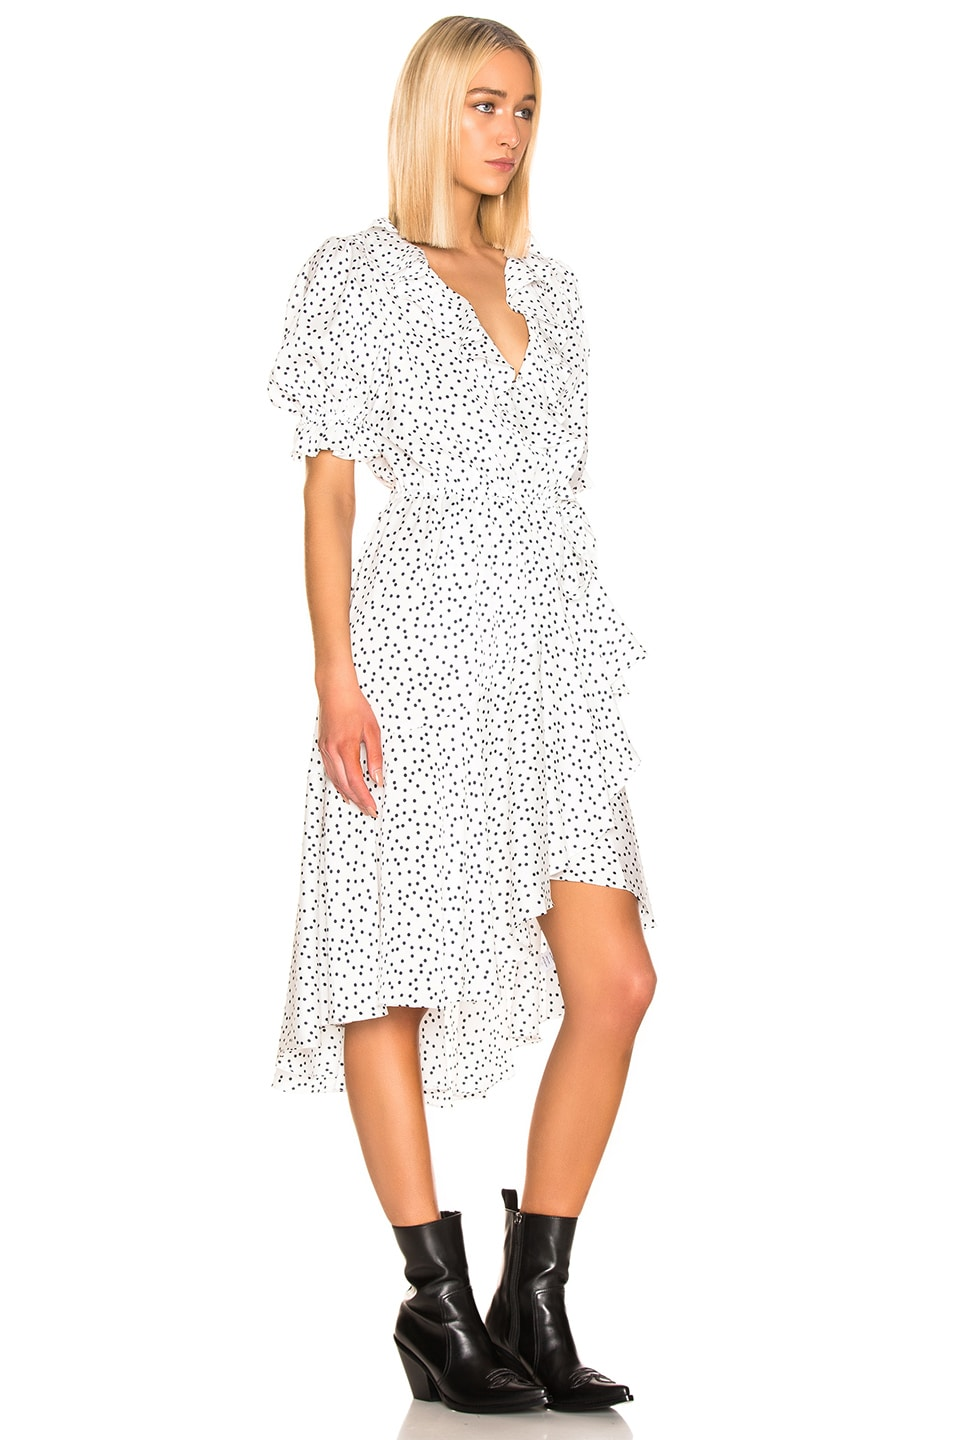 Image 2 of ICONS Objects of Devotion Cha Cha Dress in White & Navy Dot